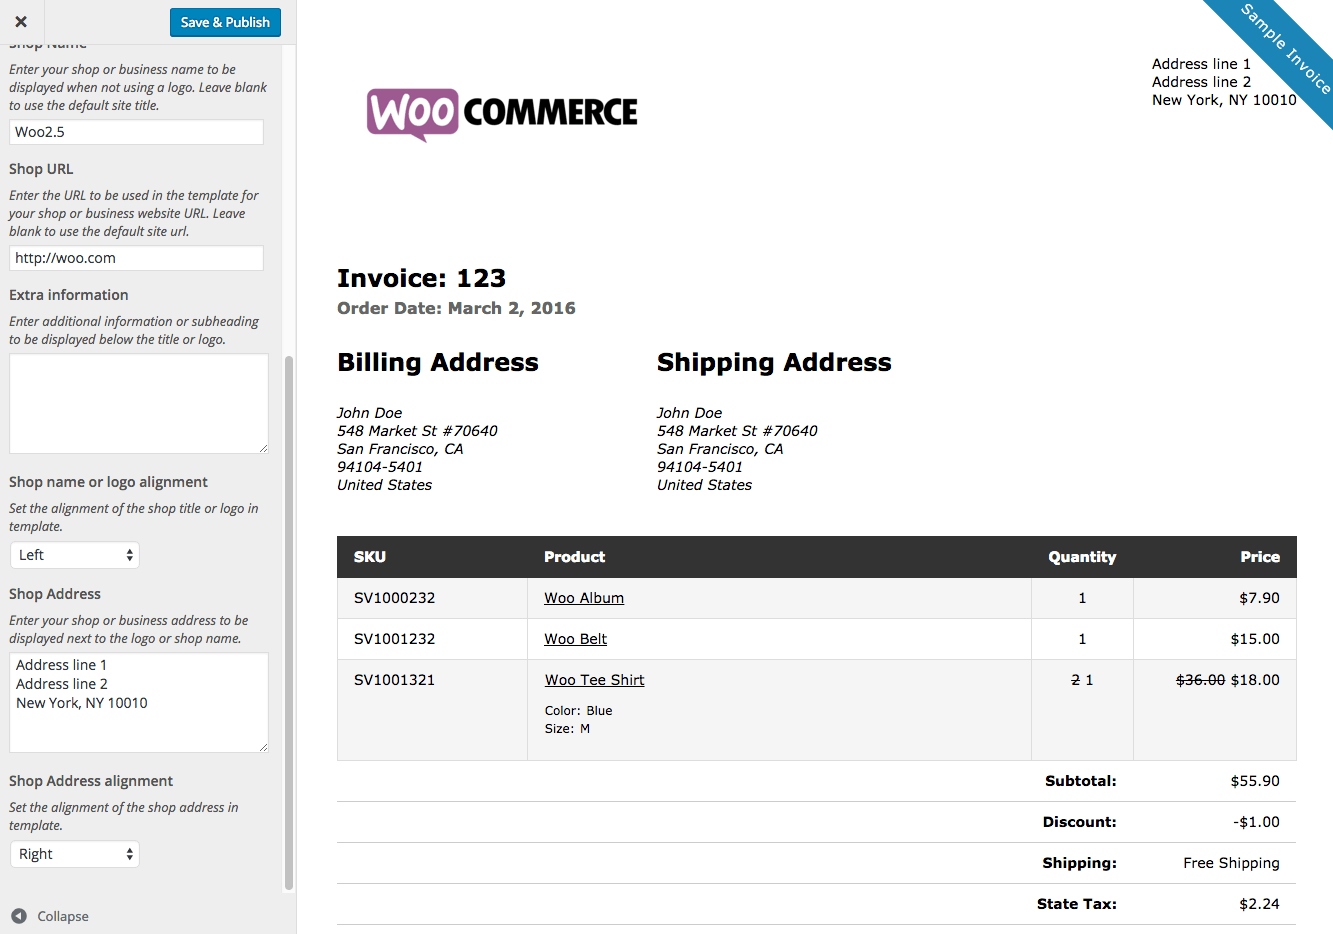 Maidofhonortoastus  Gorgeous Woocommerce Print Invoices Amp Packing Lists  Woocommerce Docs With Entrancing Woocommerce Print Invoices  Packing Lists Customizer With Adorable Goodwill Receipts Tax Deductible Also Receipt Holder Organizer In Addition Rental Receipts Pdf And Vat Receipts As Well As Deposit Receipt Format Additionally Form Of Receipt From Docswoocommercecom With Maidofhonortoastus  Entrancing Woocommerce Print Invoices Amp Packing Lists  Woocommerce Docs With Adorable Woocommerce Print Invoices  Packing Lists Customizer And Gorgeous Goodwill Receipts Tax Deductible Also Receipt Holder Organizer In Addition Rental Receipts Pdf From Docswoocommercecom